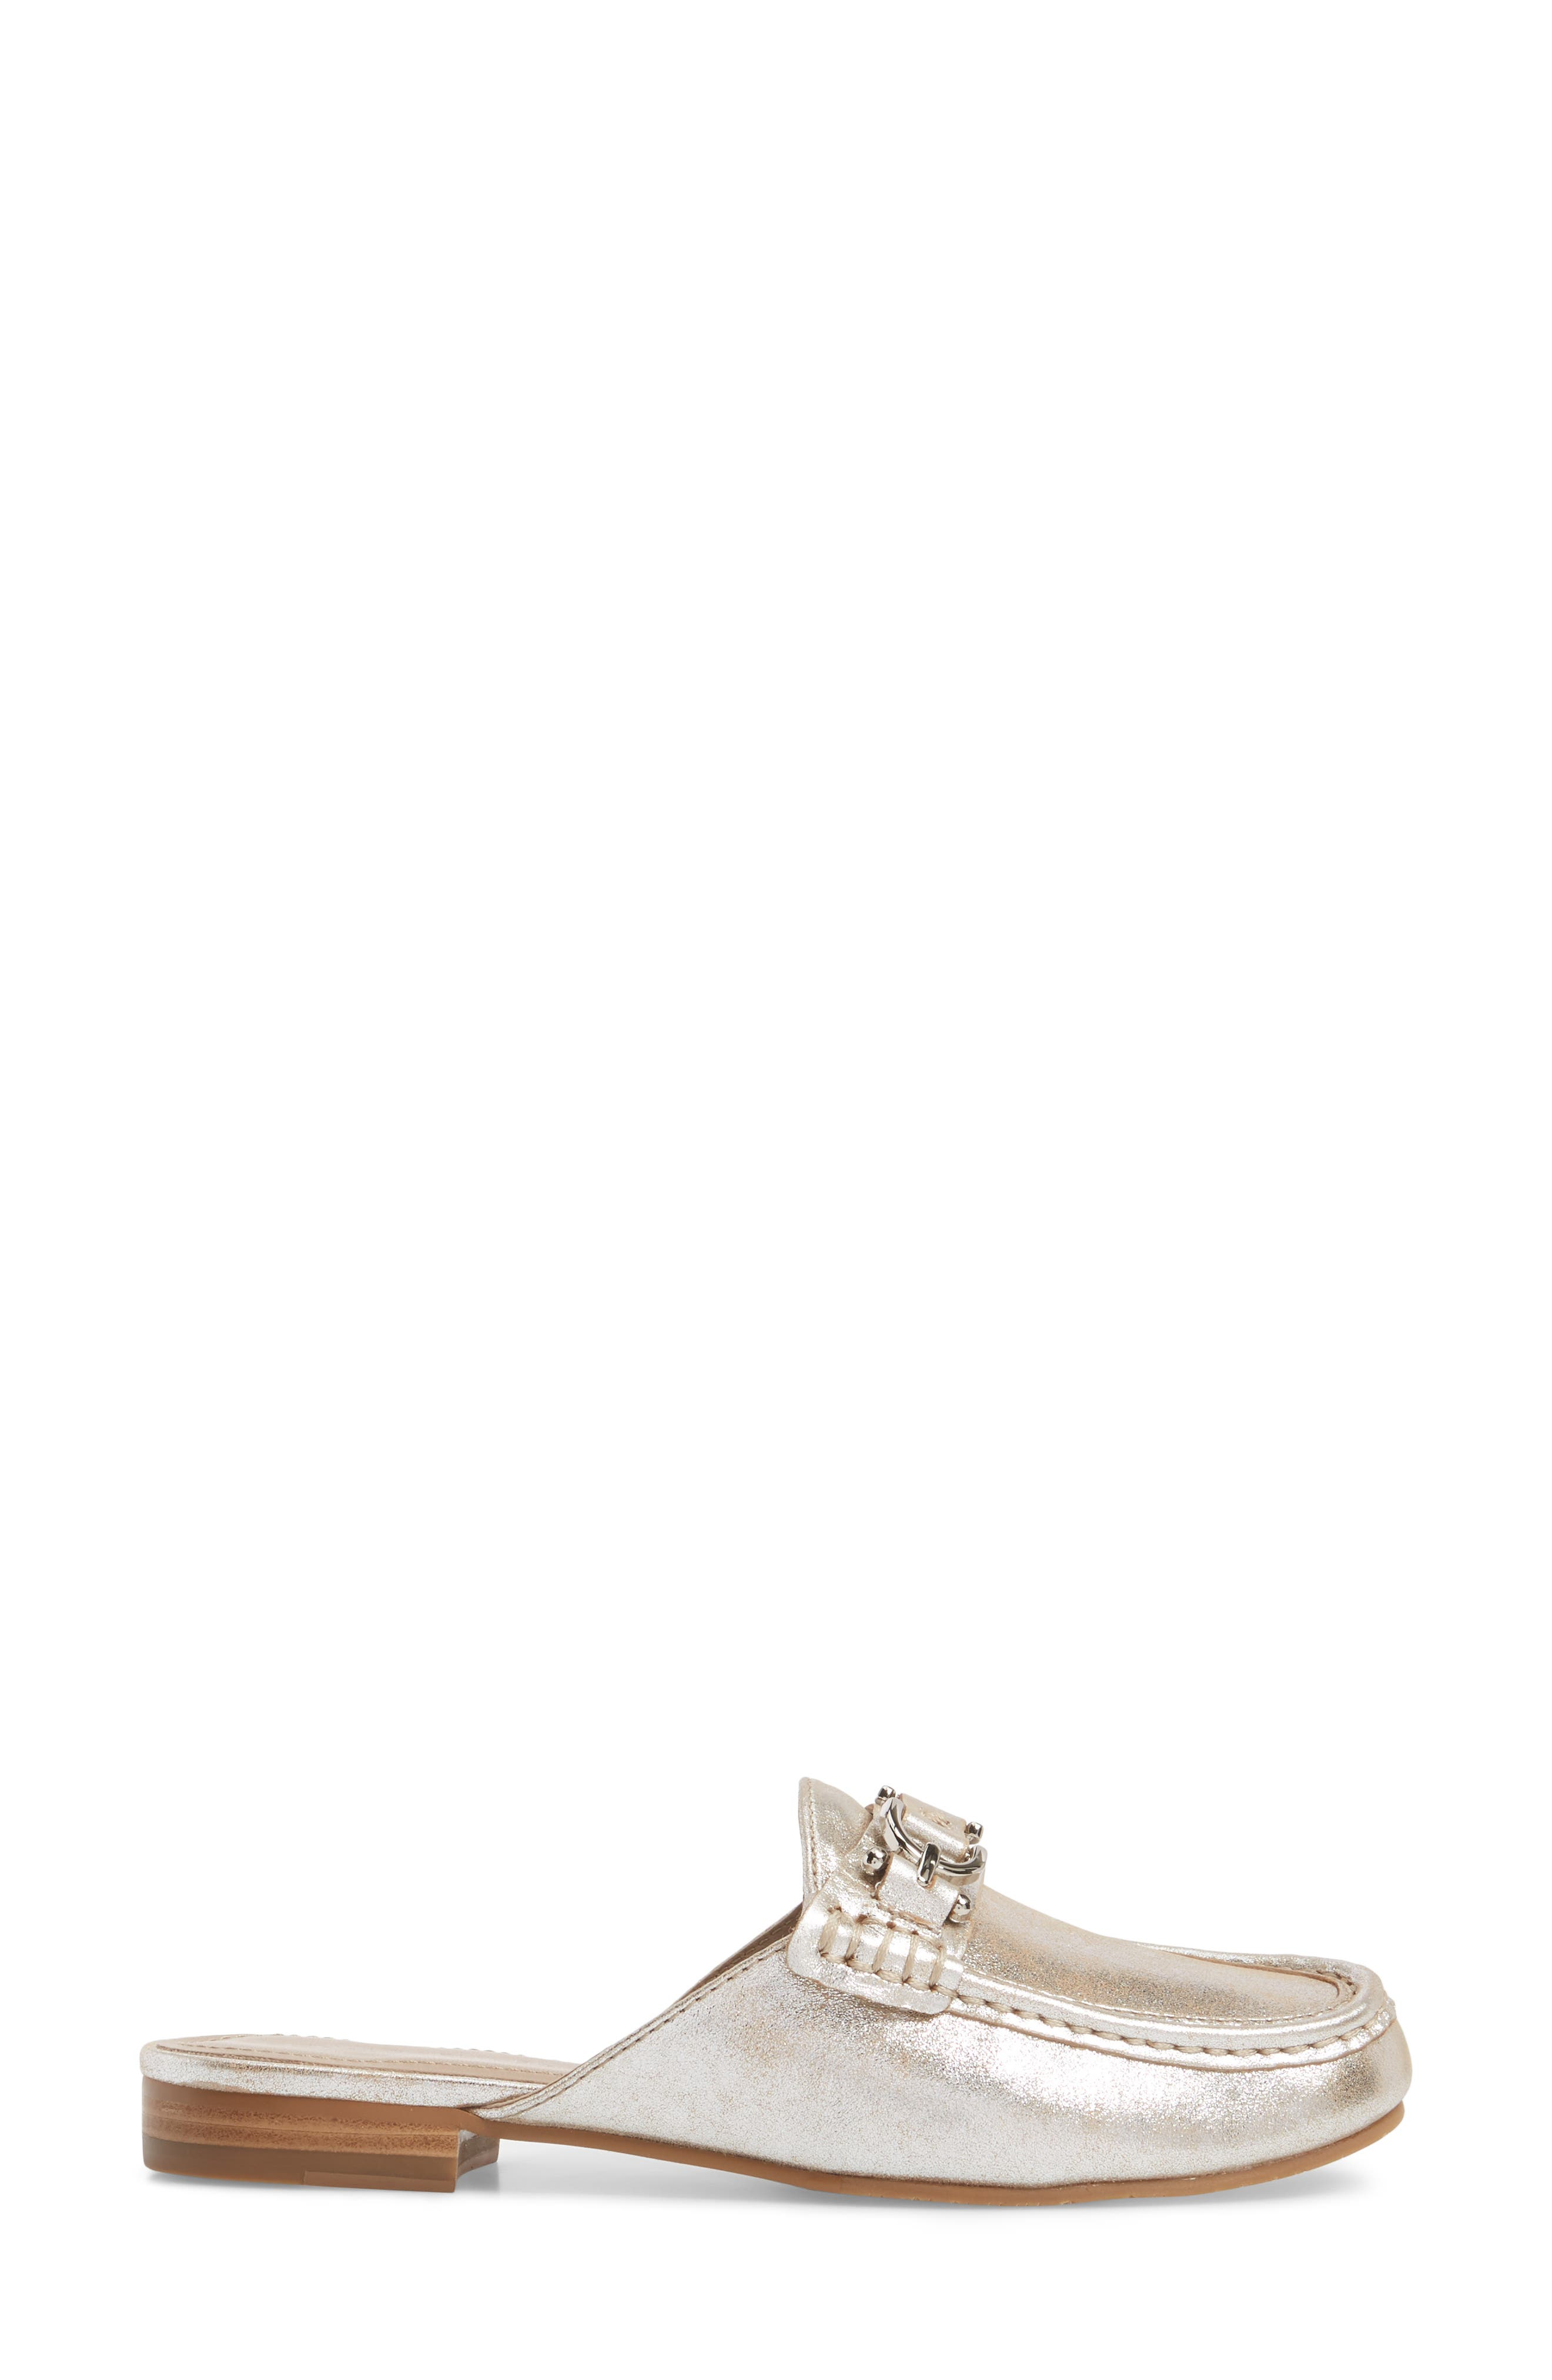 Sylvi Loafer Mule,                             Alternate thumbnail 3, color,                             Silver Leather